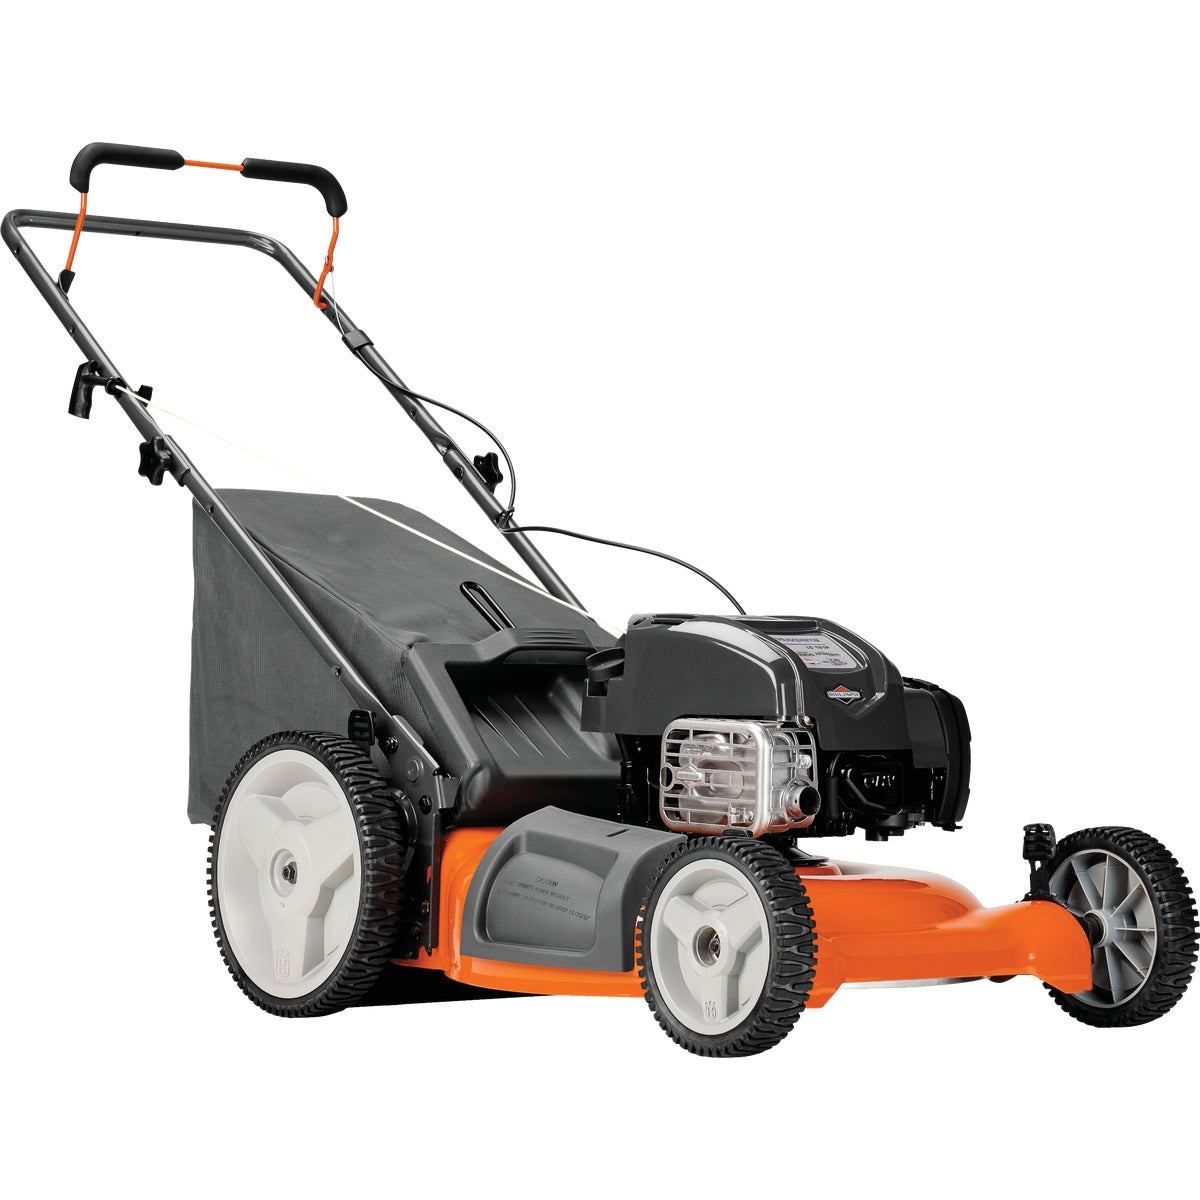 "21"" HI-WHL PUSH MOWER - 961330018 by Husqvarna Outdoor"